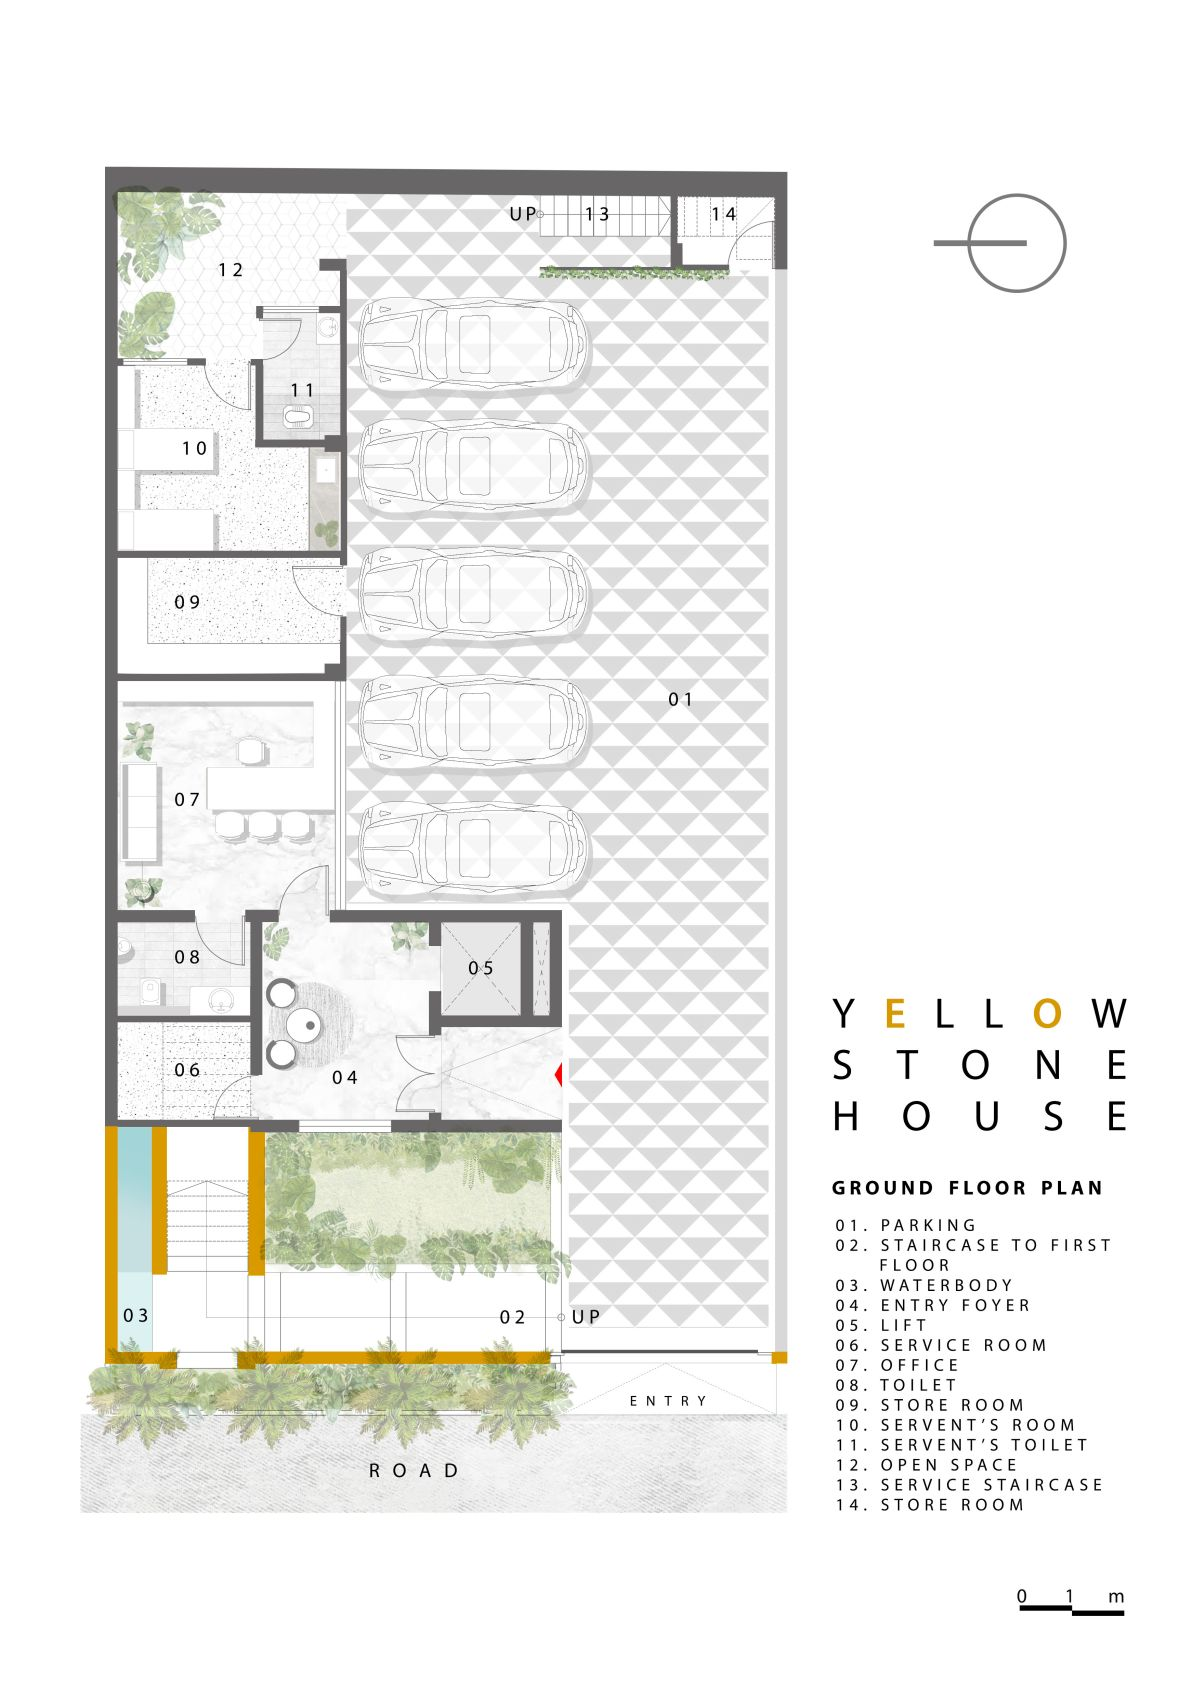 Yellow Stone House, at Indore, by Span Architects 61